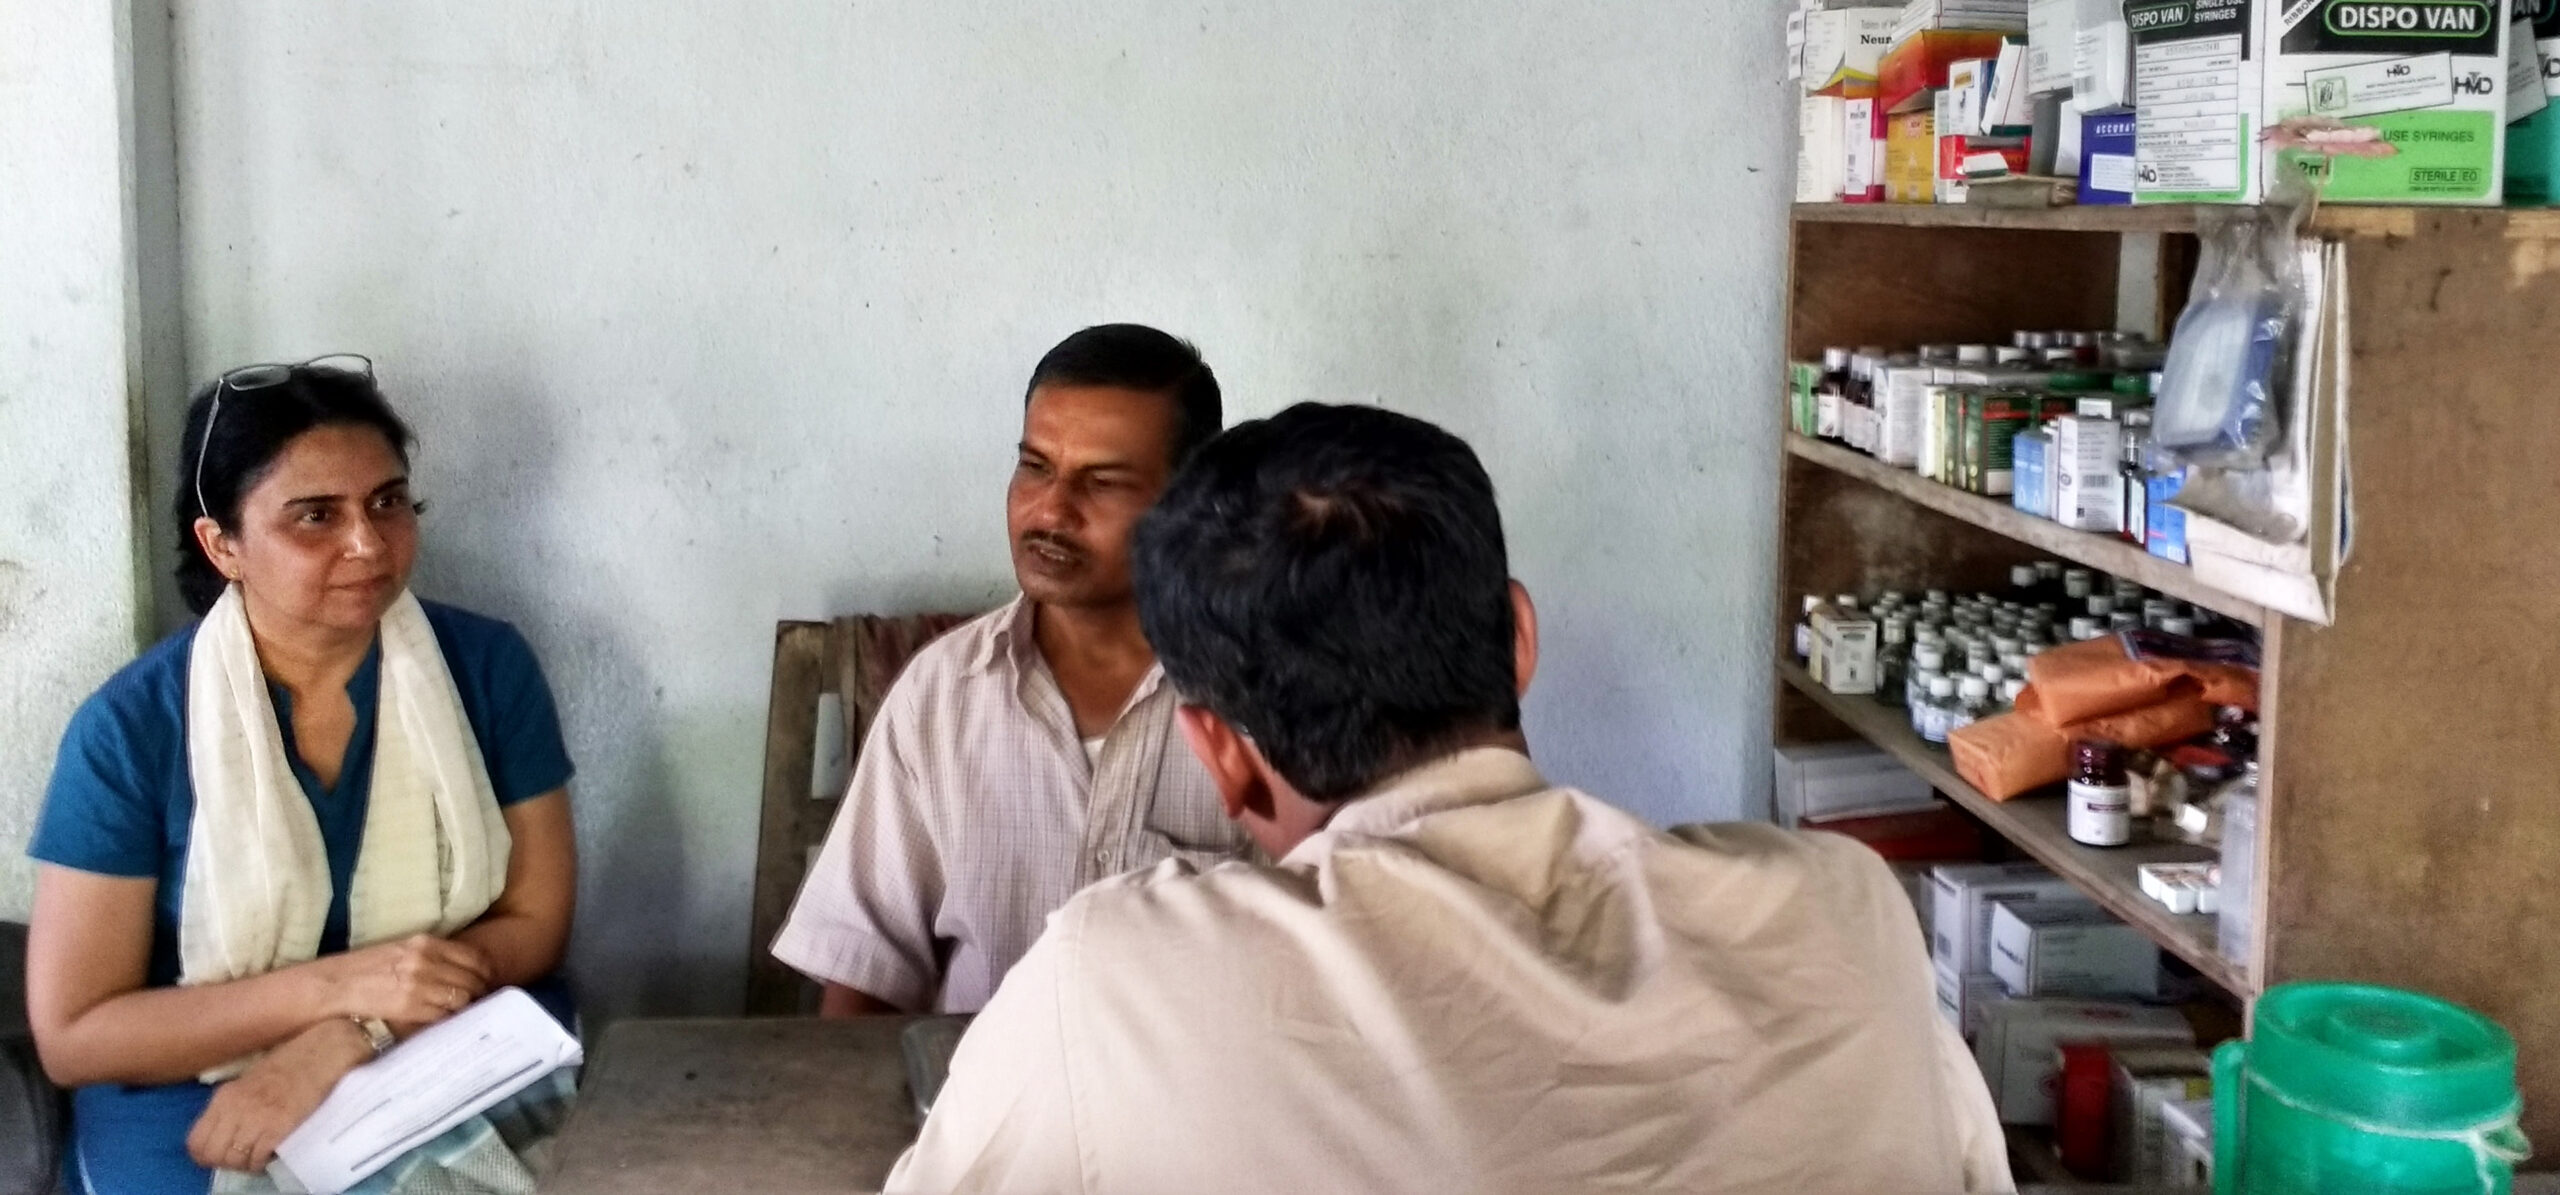 One woman and two men disussing at a health care facility in rural India